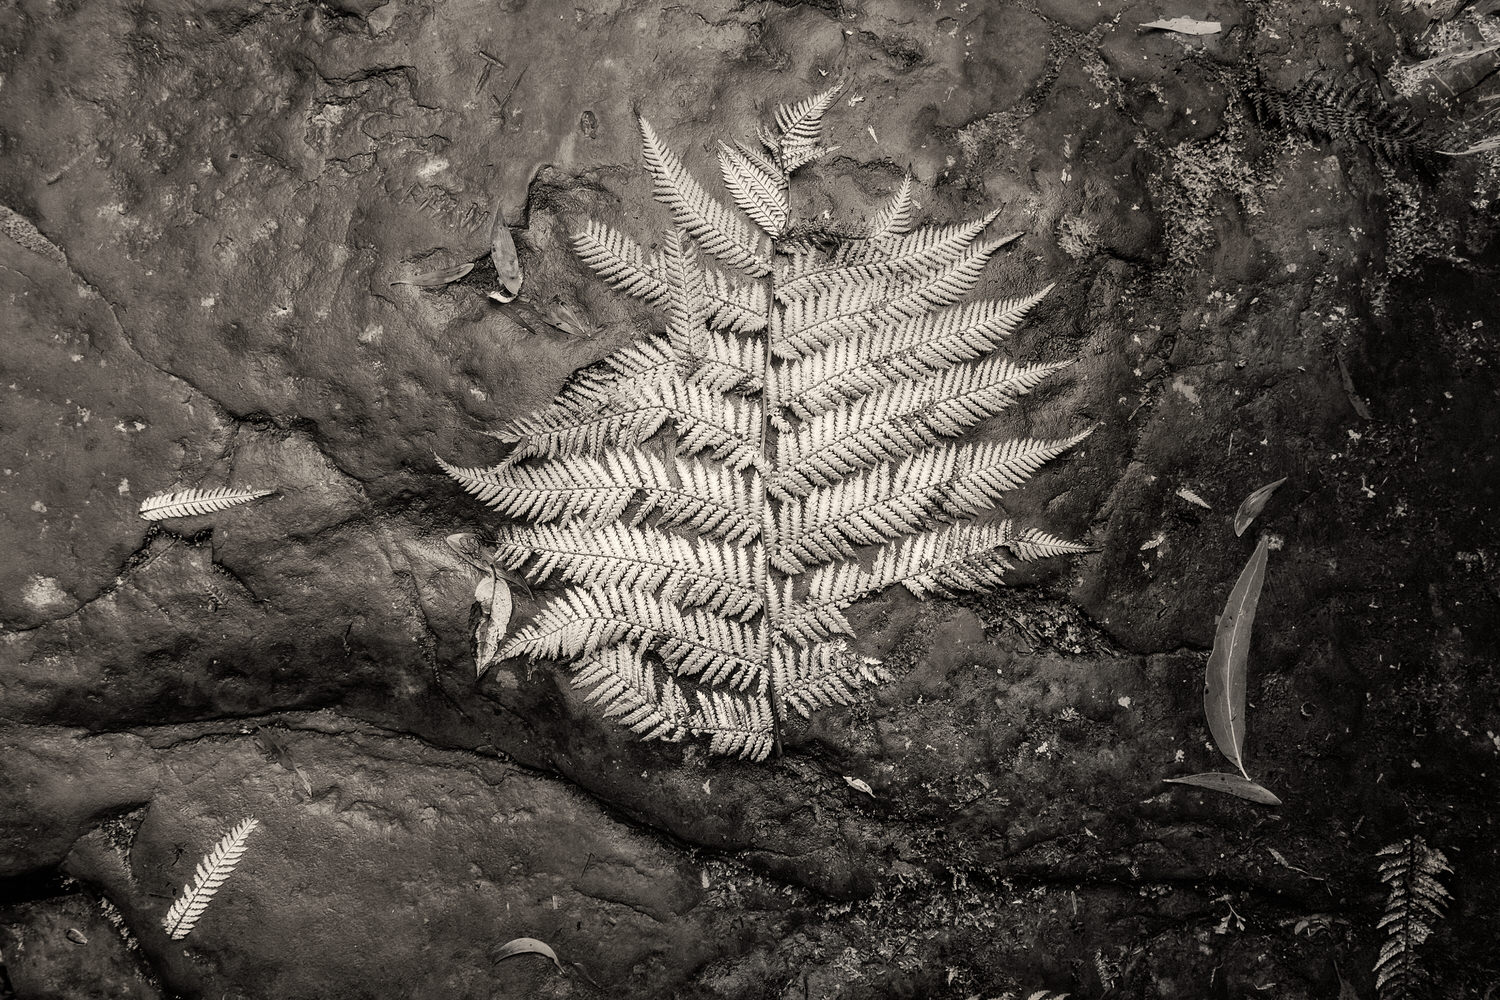 A lovely, silvery detail of a    fern   , rendered into black and white, near the base of the    Erskine Falls    in the    Great Otway National Park    near Lorne, Australia.